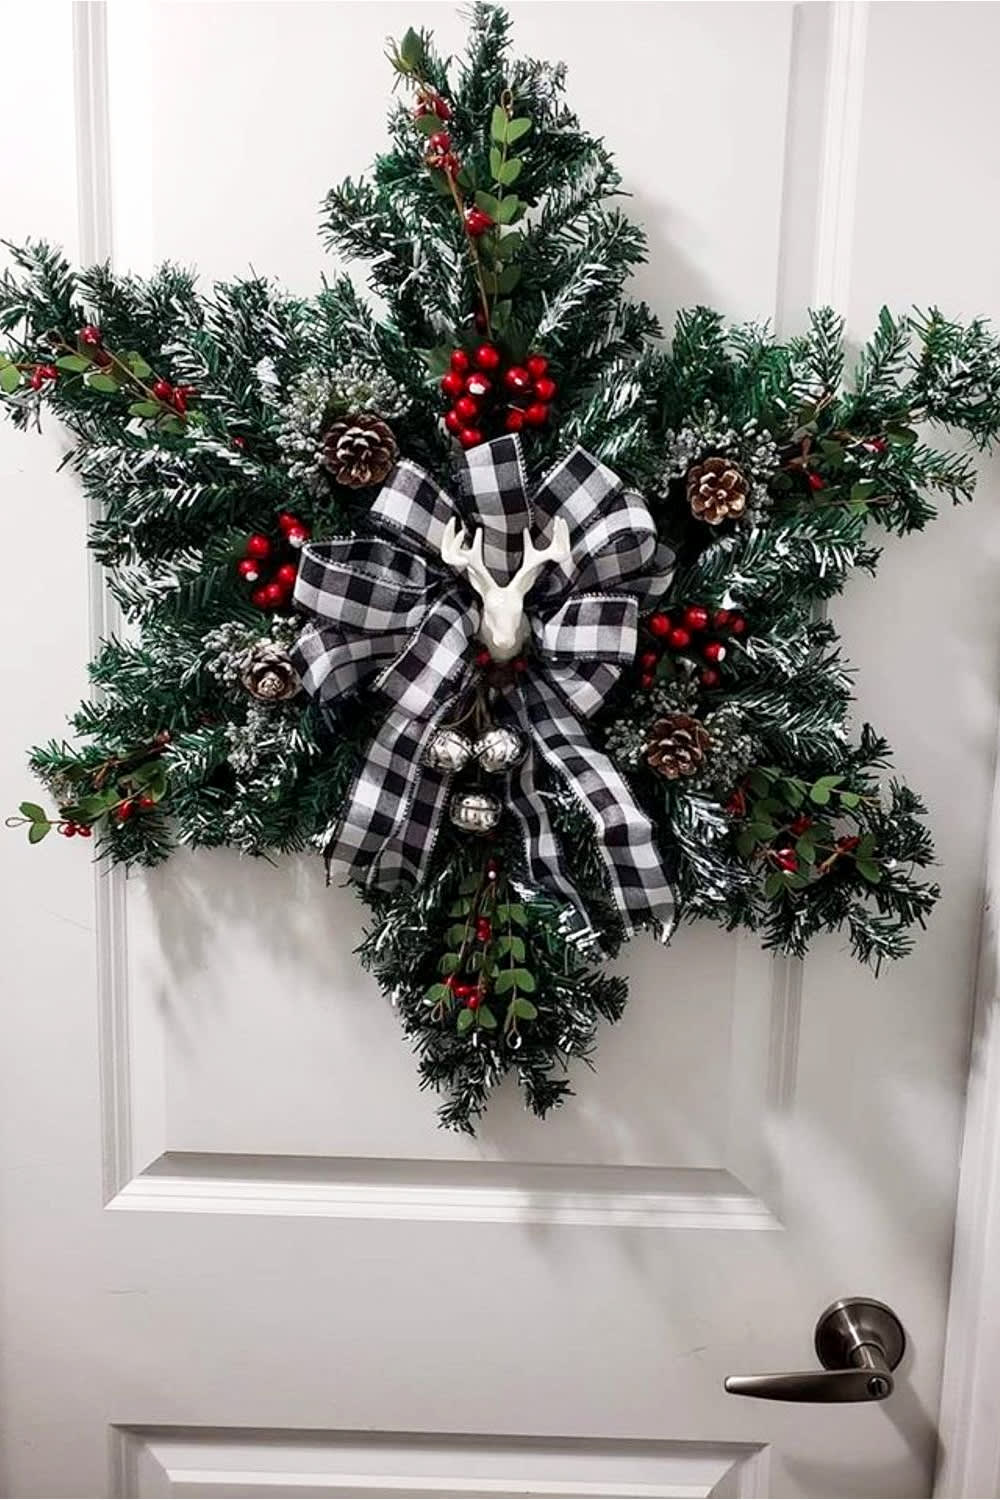 Diy Farmhouse Christmas Decor And Country Style Christmas Decorations For Your Home